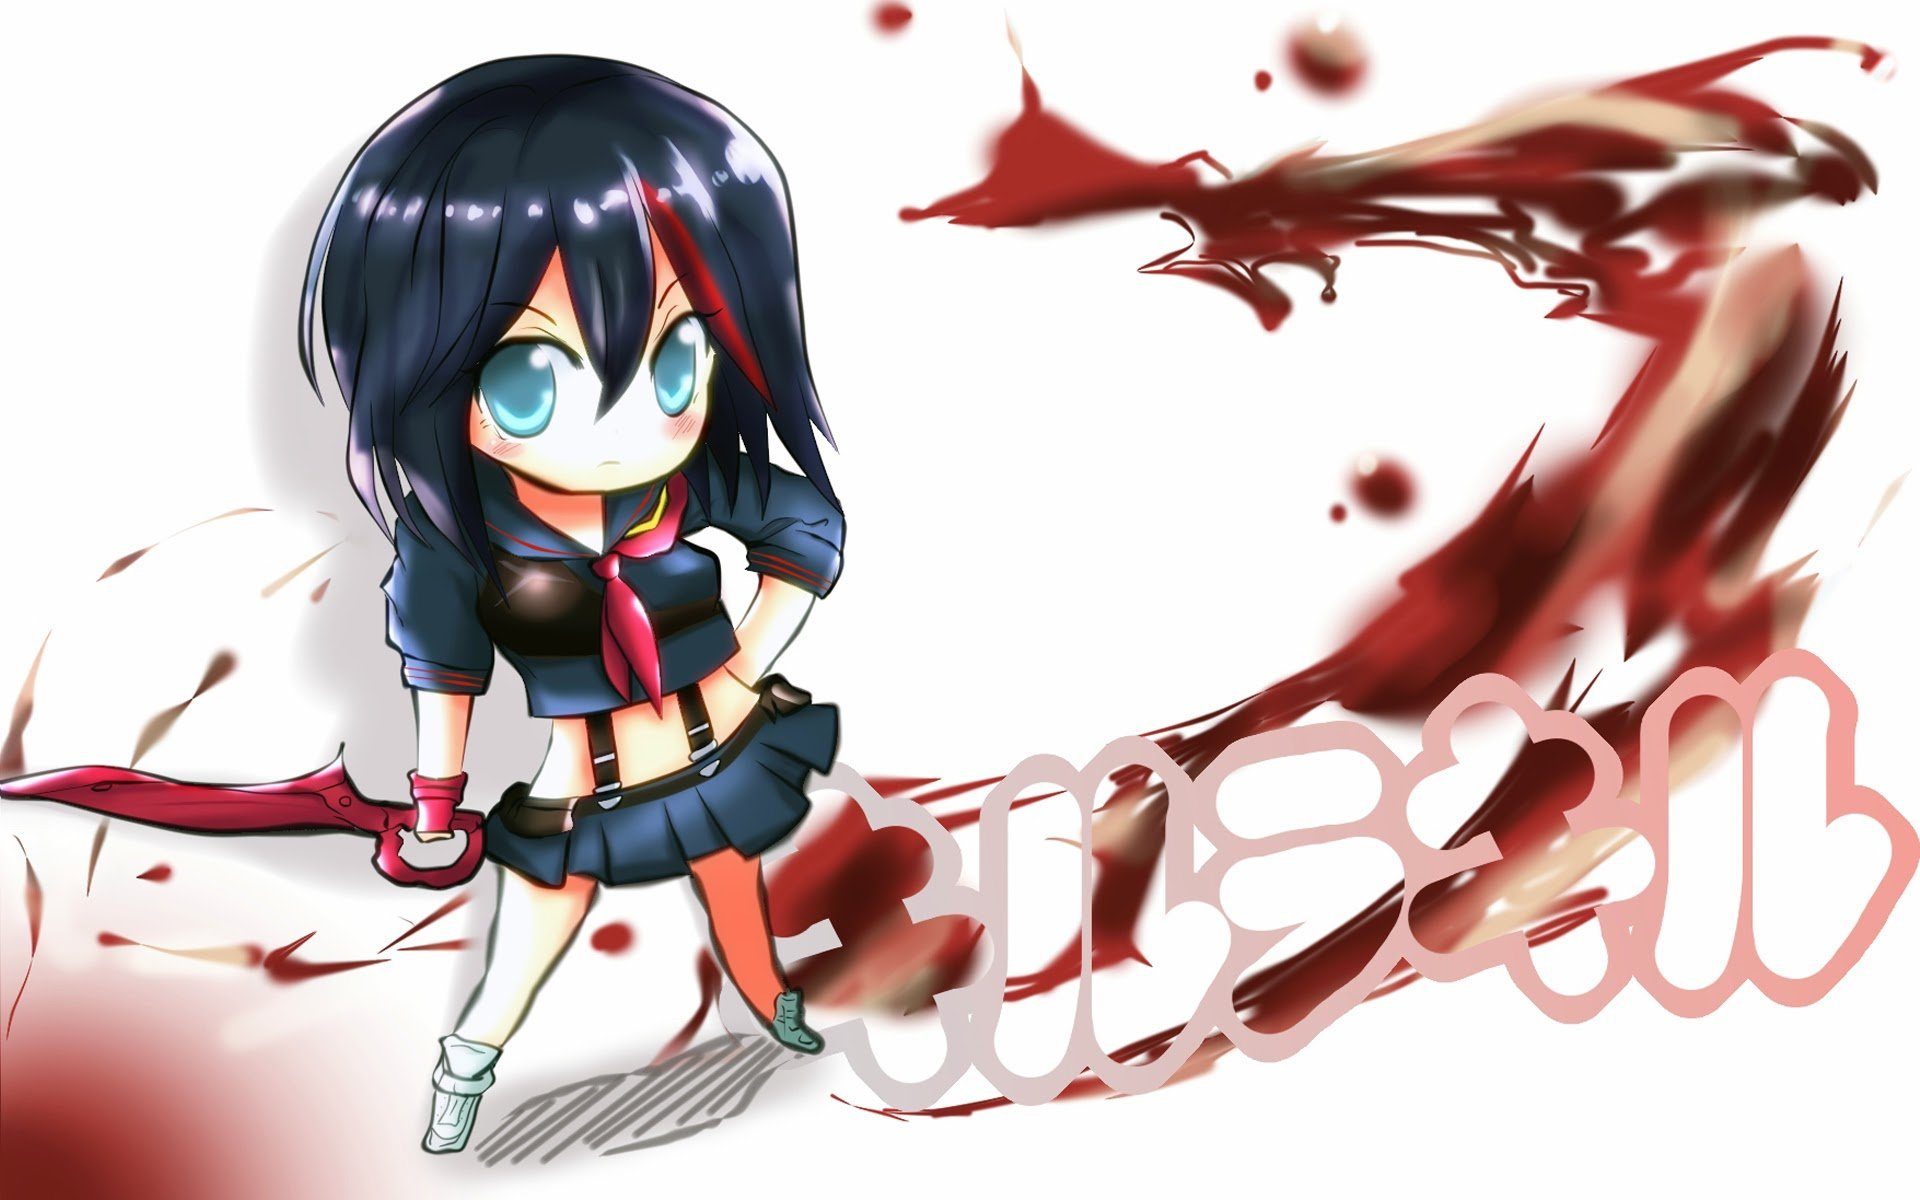 Cool Chibi Anime Wallpaper Computer Wallpaper WallpaperLepi 1920x1200